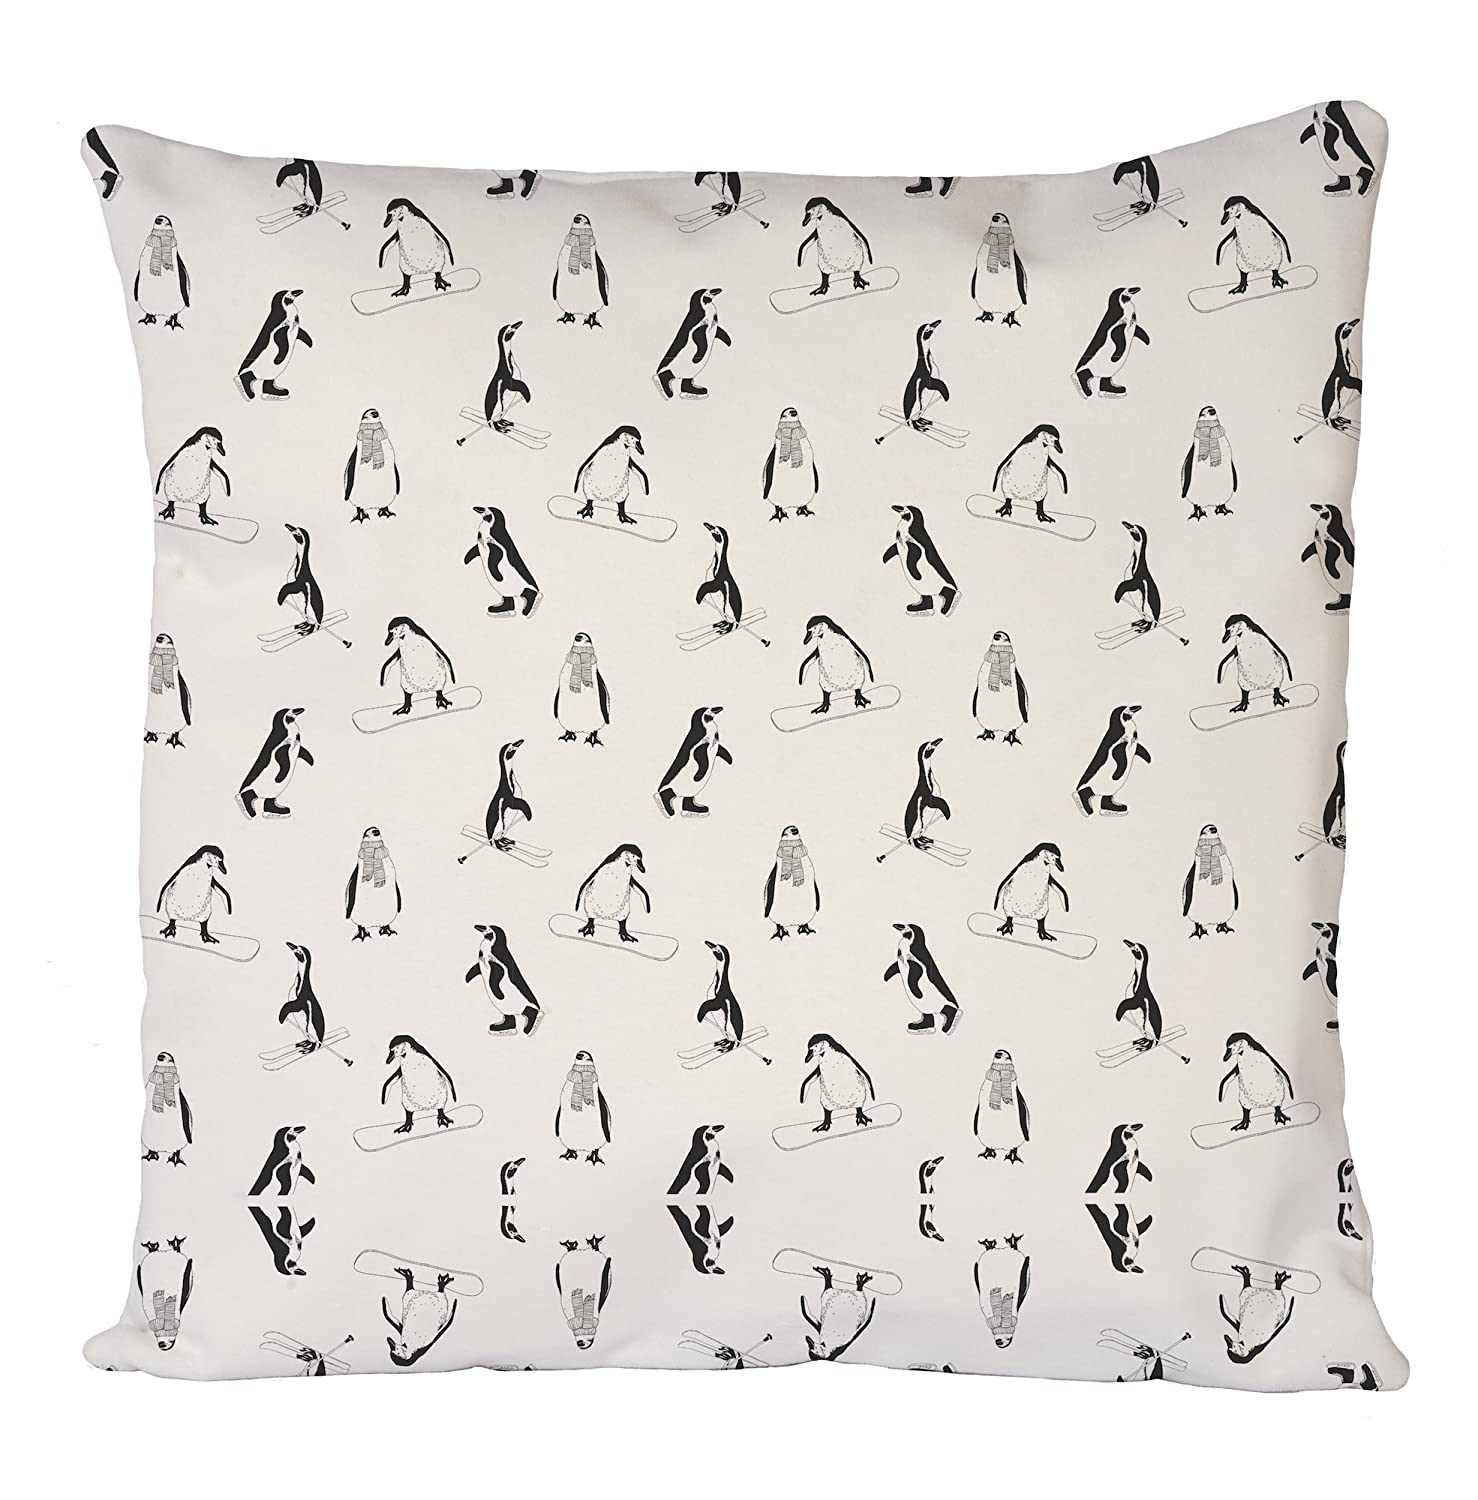 Uk print king Penguins Ski Seamless, Pillow Case, Cushion Cover, Home Sofa Dé cor Home Sofa Décor